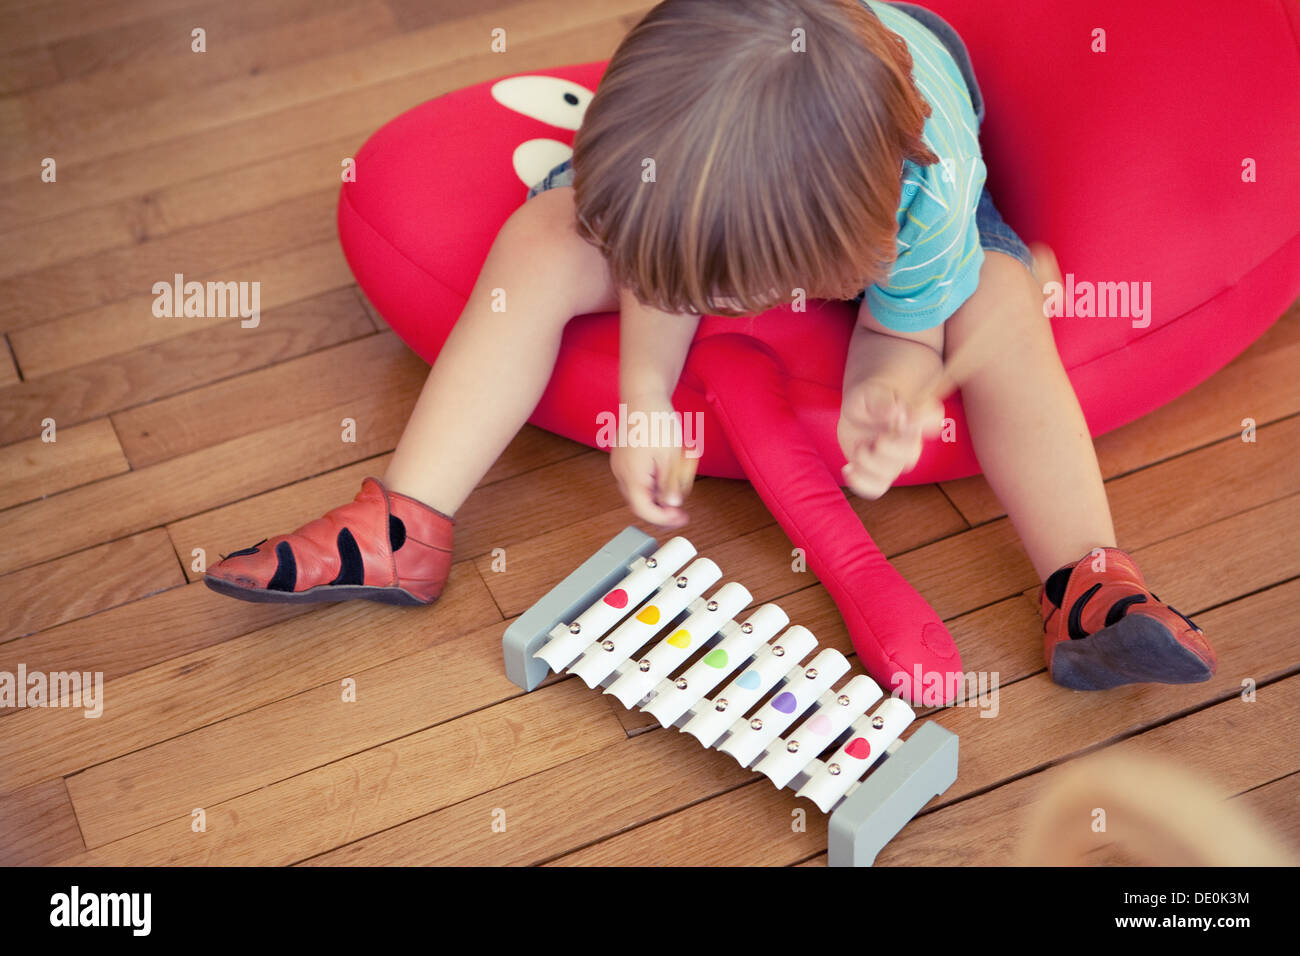 Little boy playing toy xylophone - Stock Photo